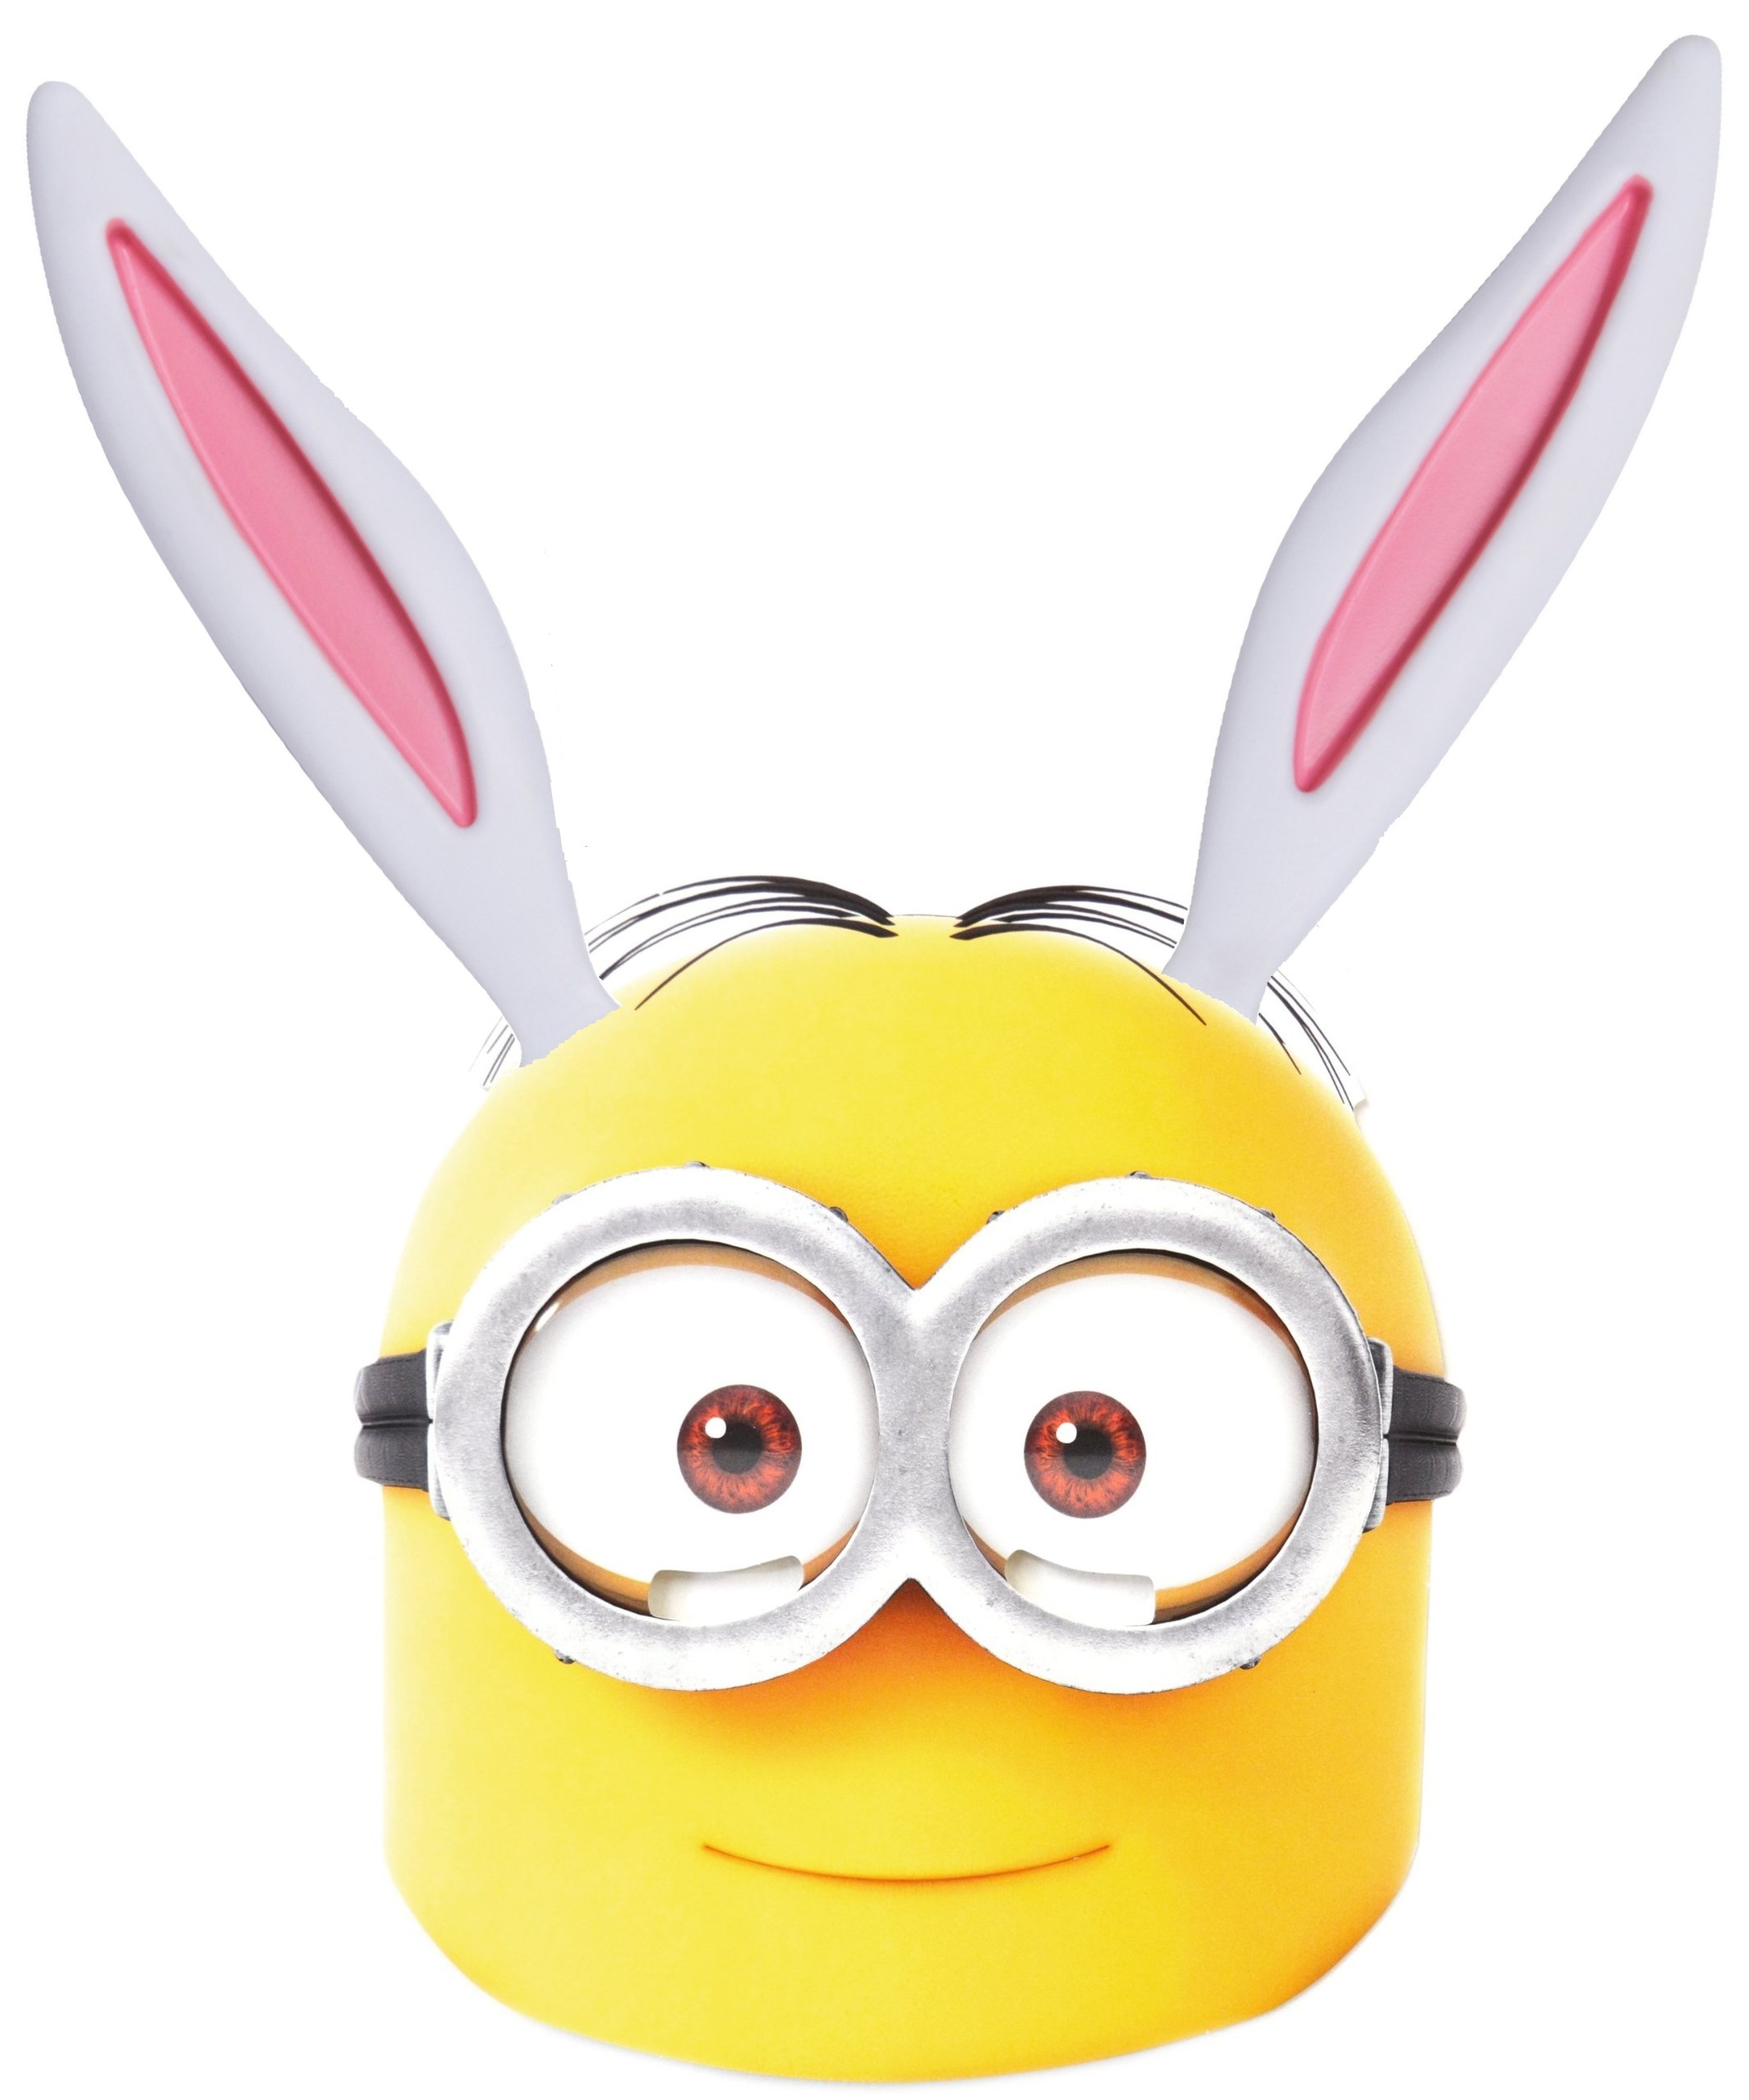 Free Easter Minion Bunny Mask Printable | Inkntoneruk Blog - Free Printable Easter Masks